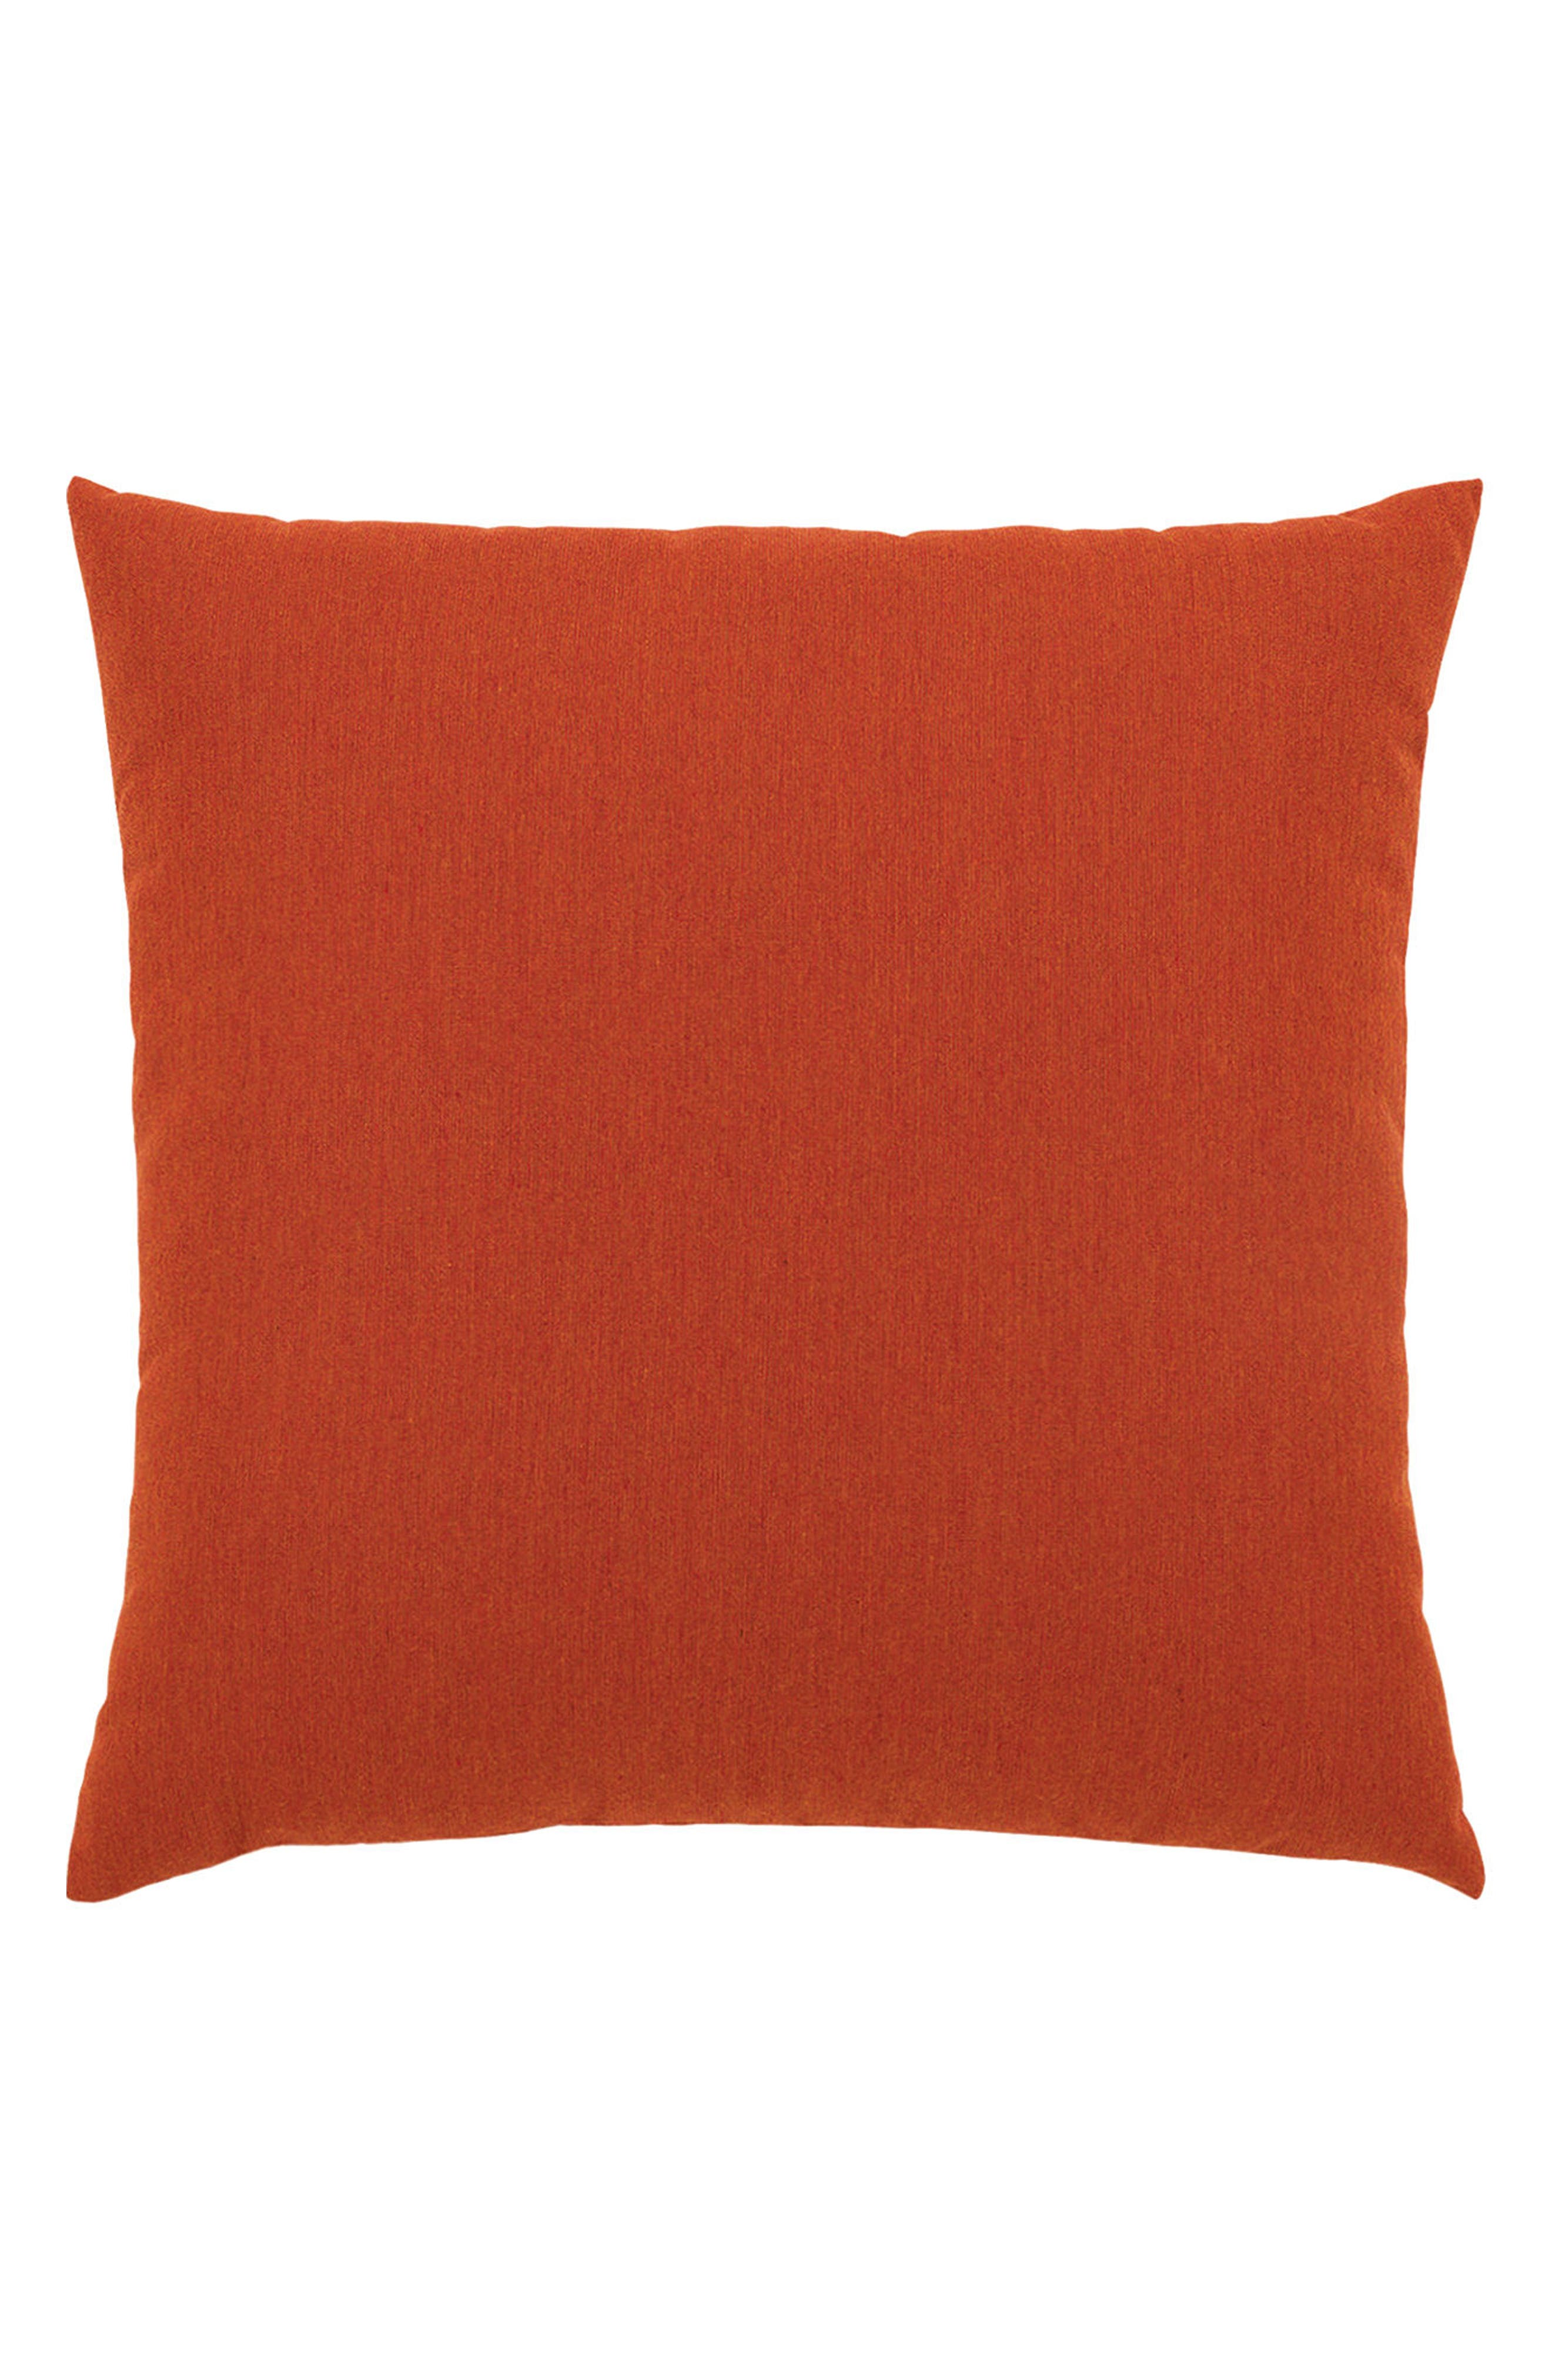 Coral Cruise Indoor/Outdoor Accent Pillow,                             Alternate thumbnail 2, color,                             801